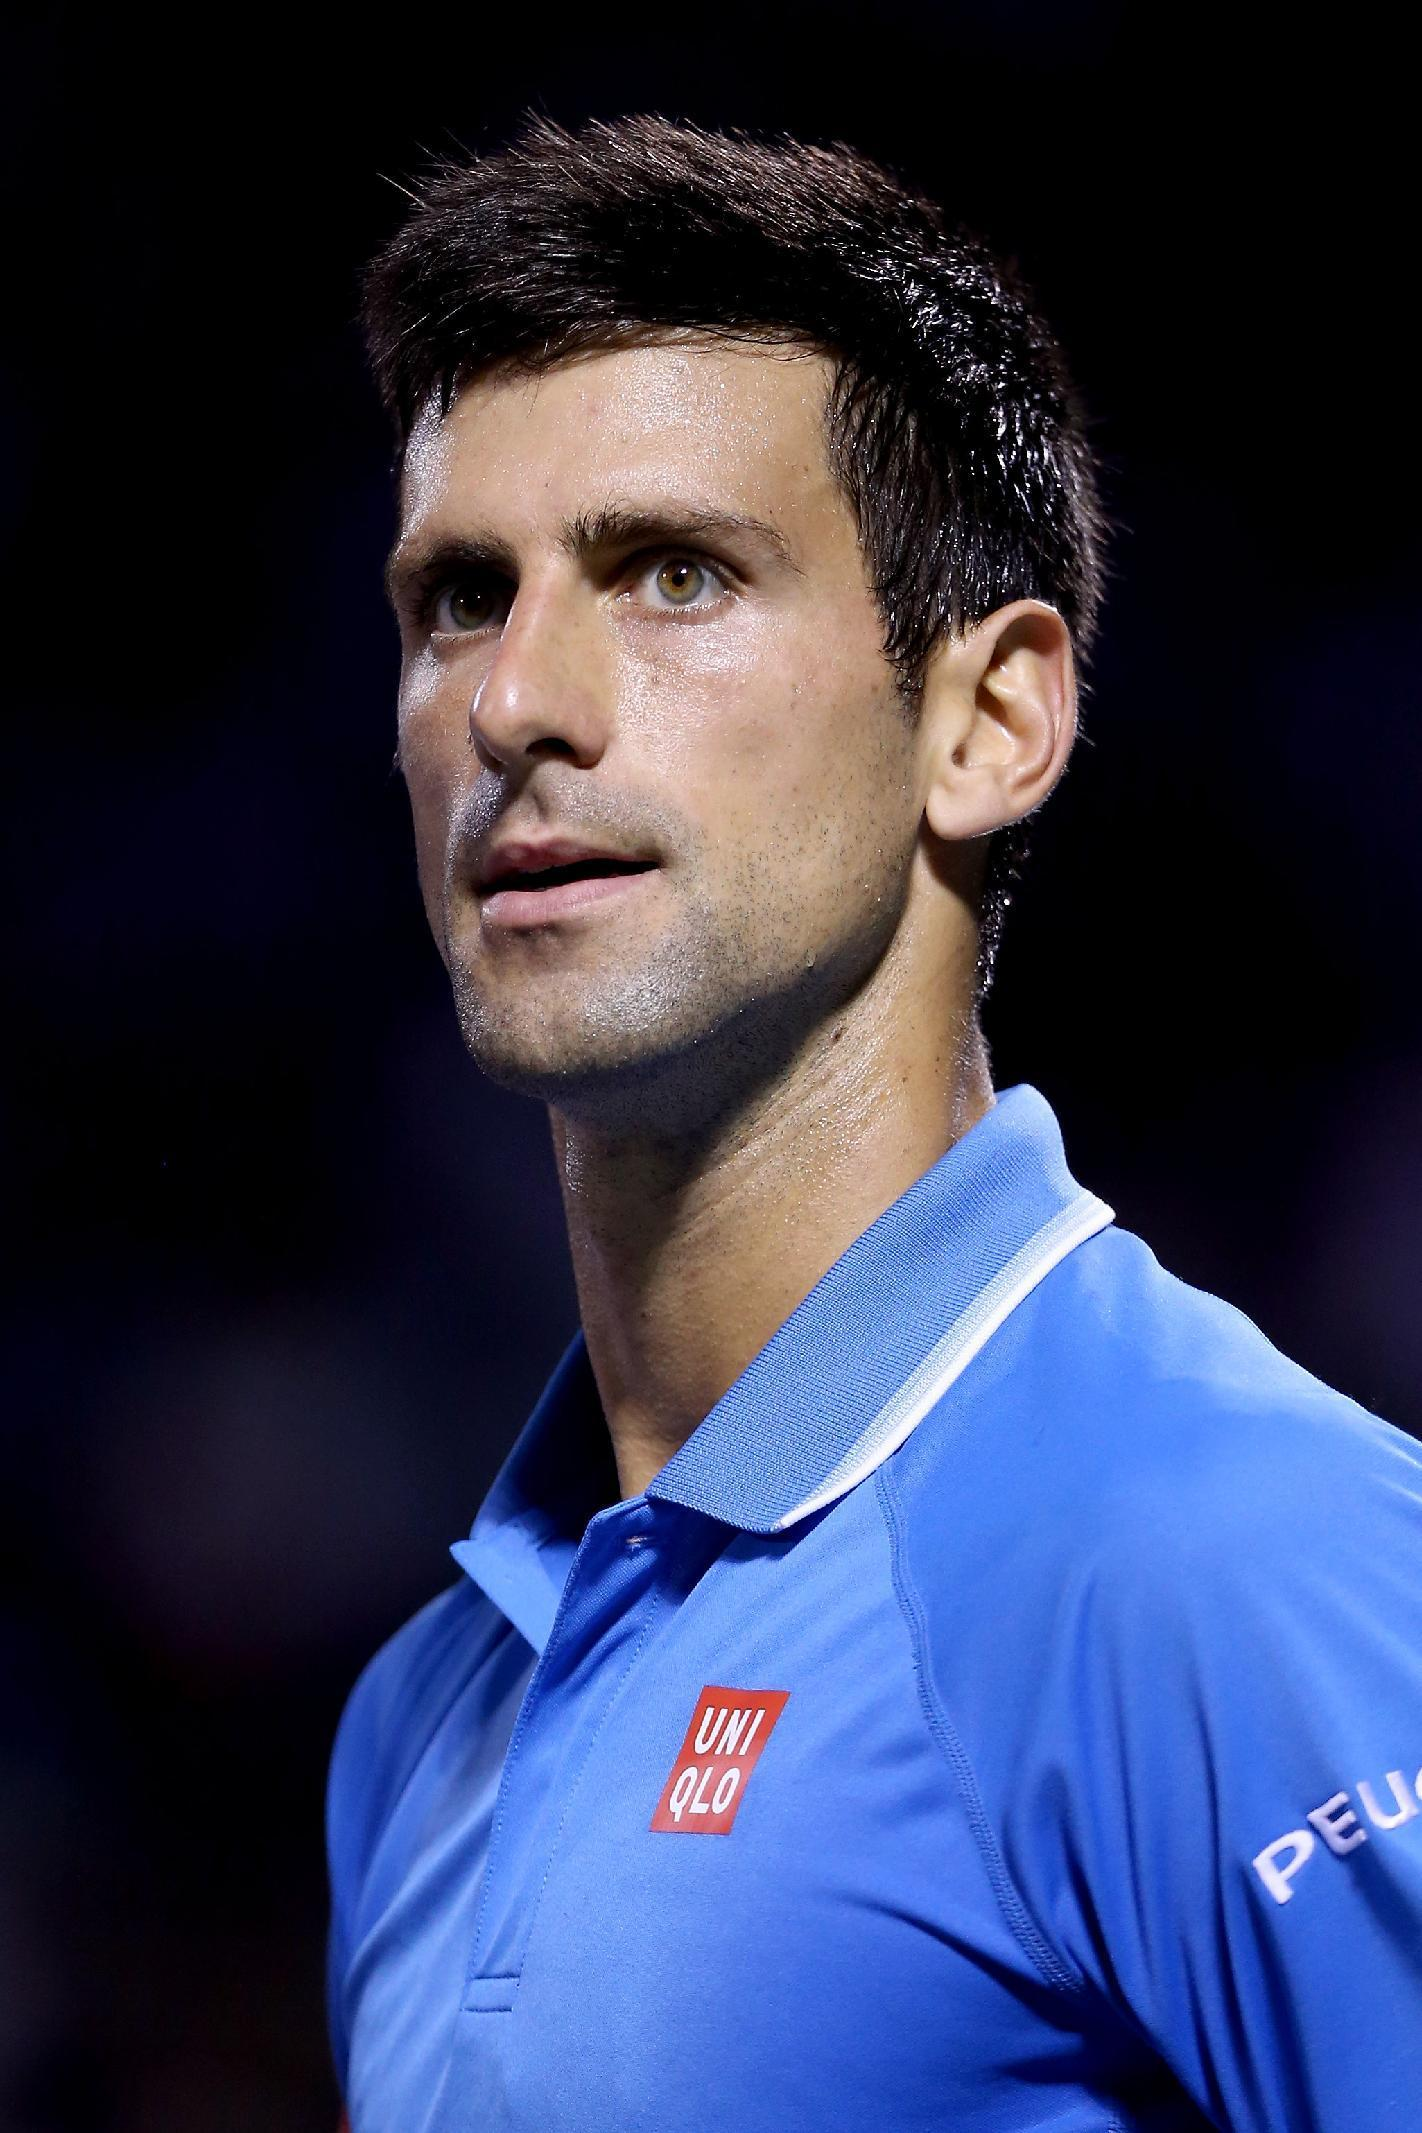 Tennis - Djokovic on brink of Grand Slam history in Paris